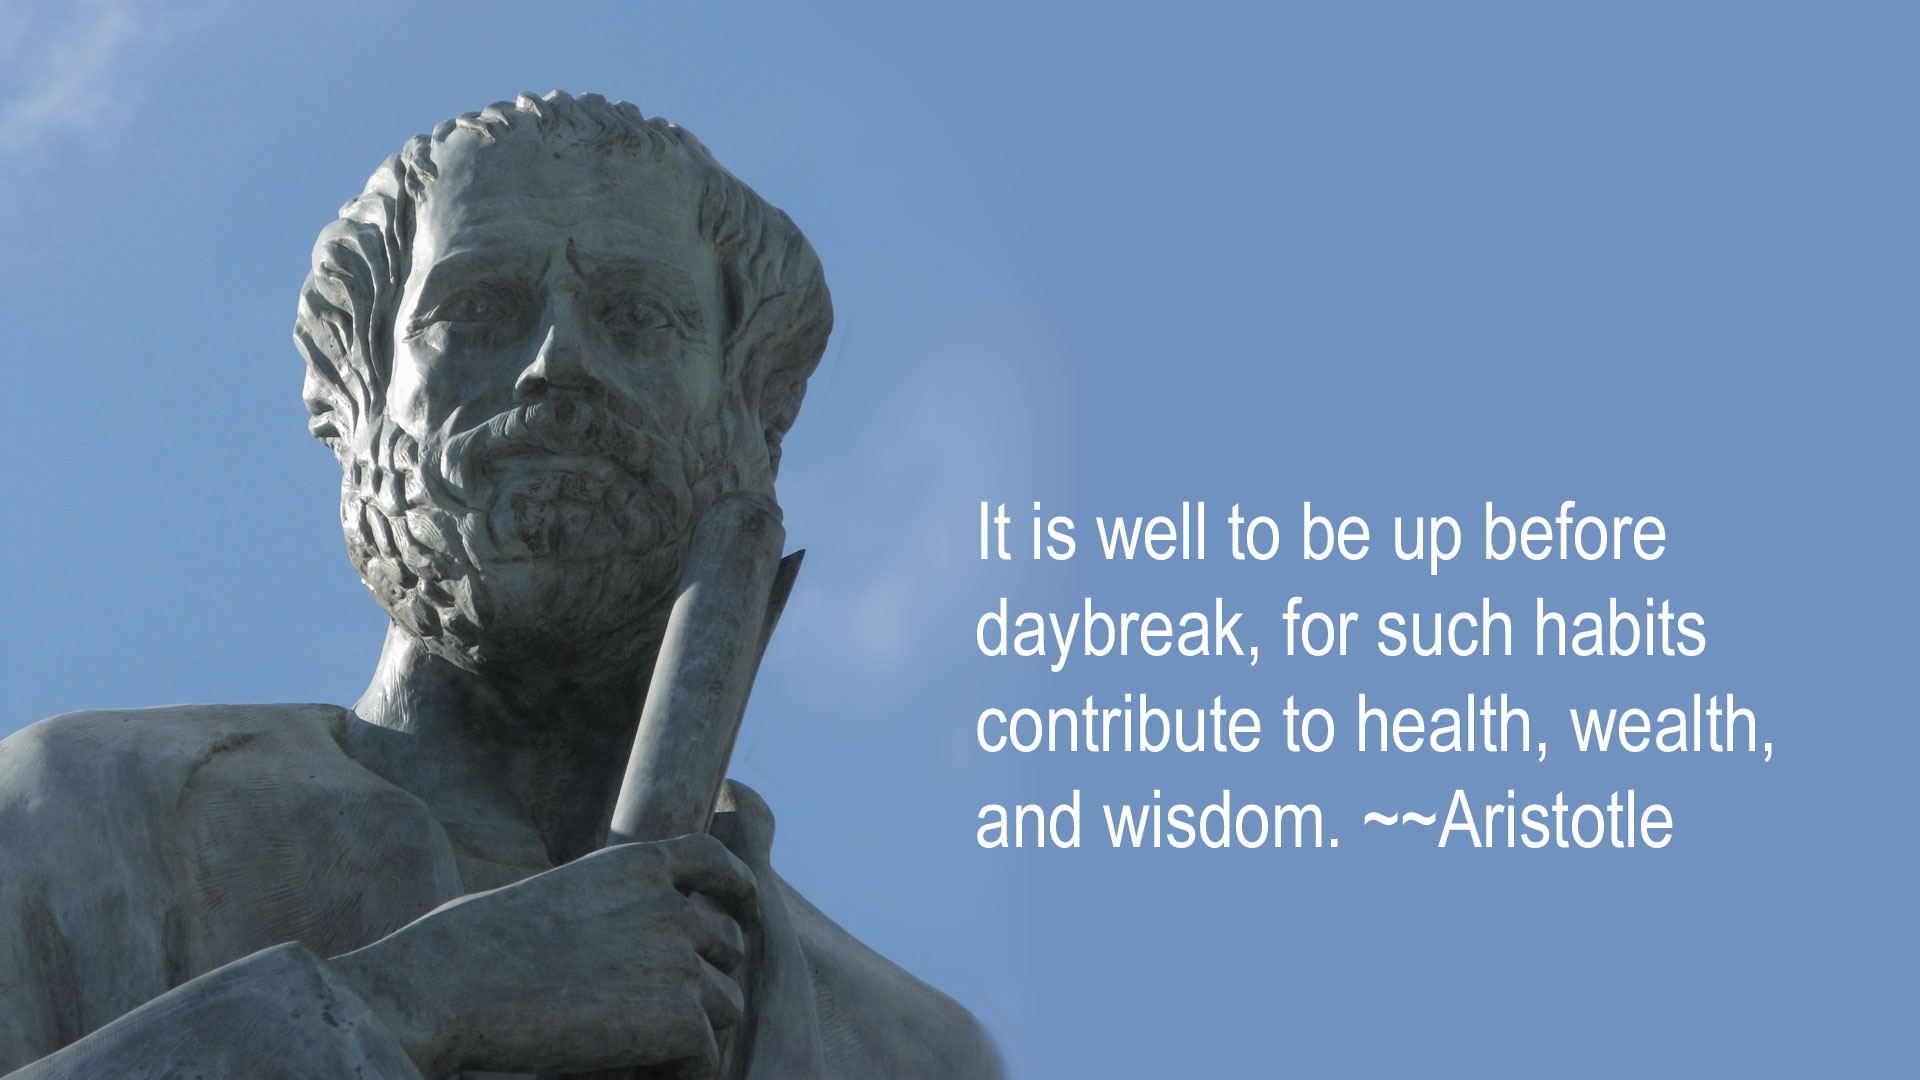 aristotle-quote-rising-early